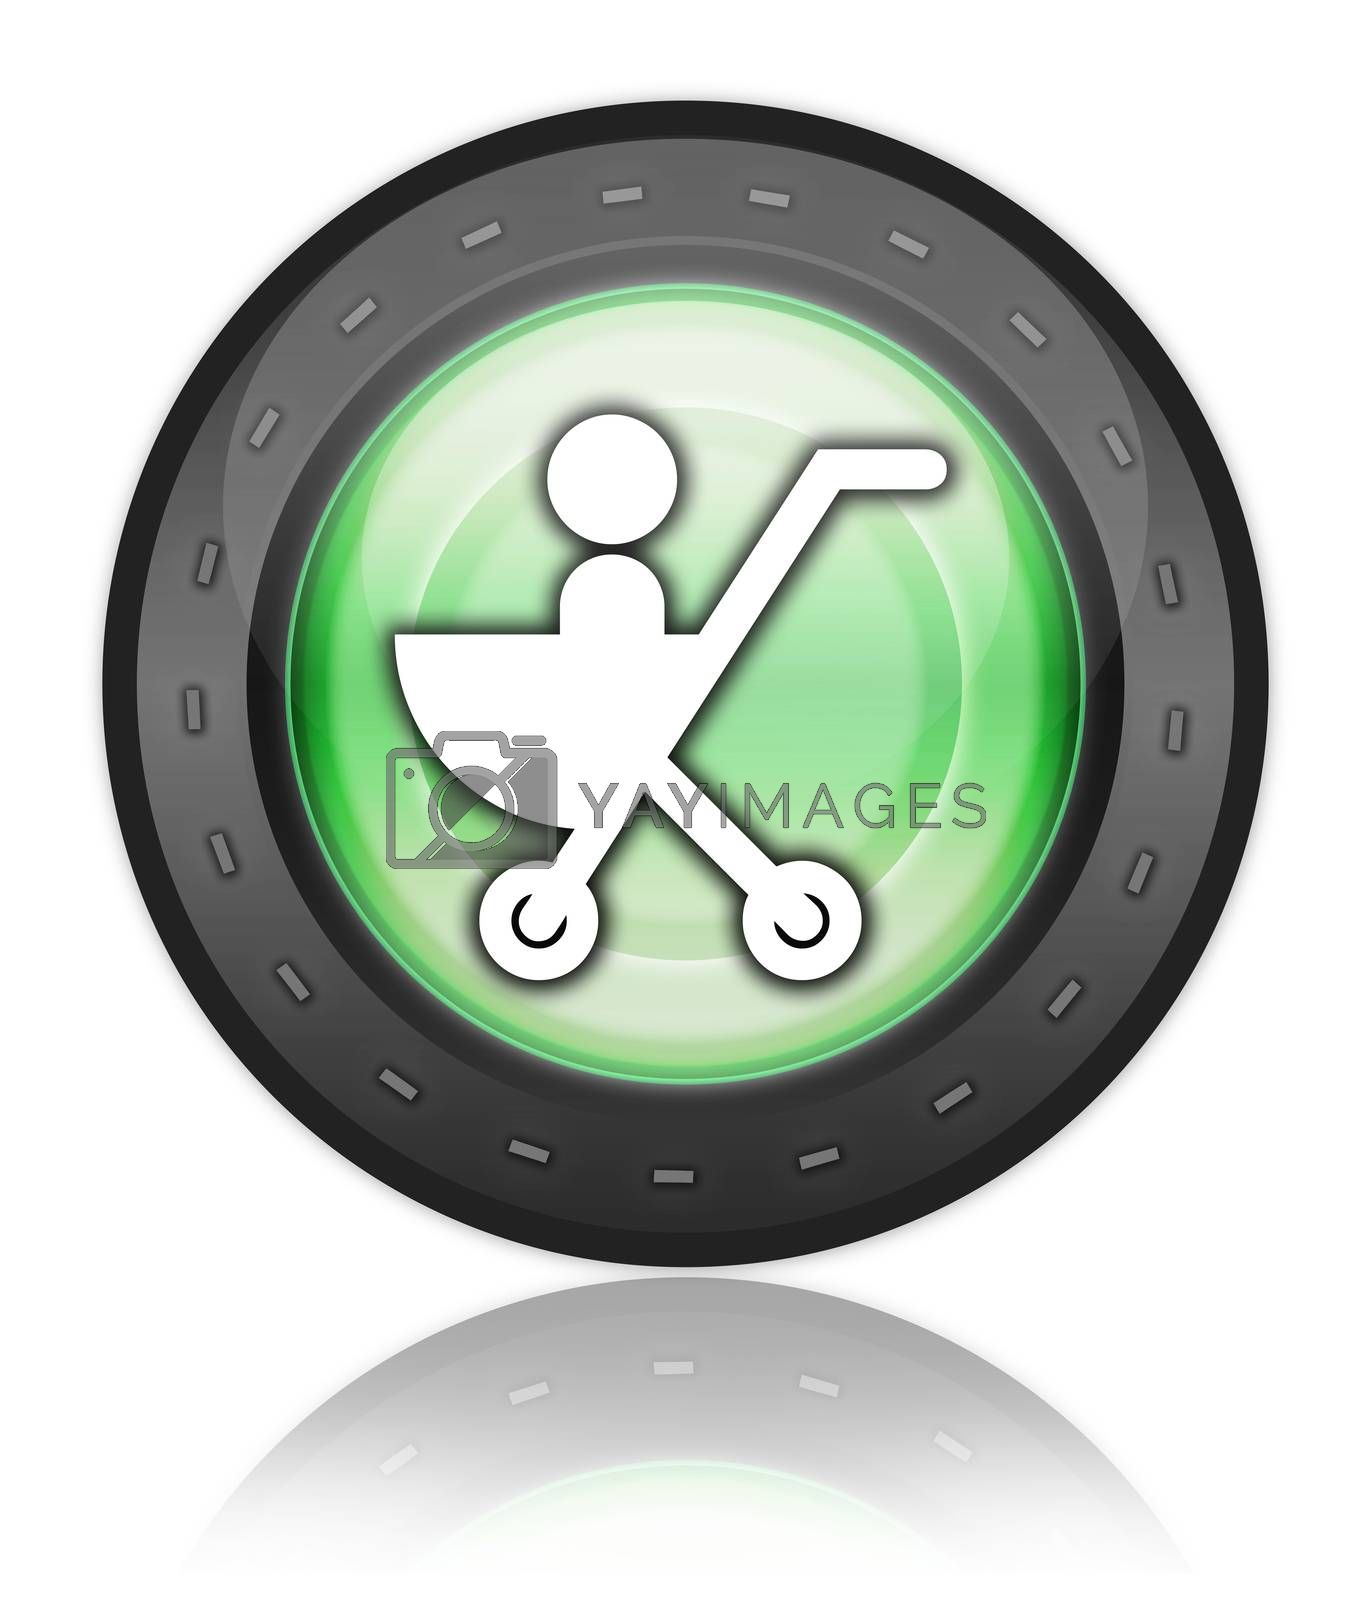 Icon, Button, Pictogram Stroller by mindscanner